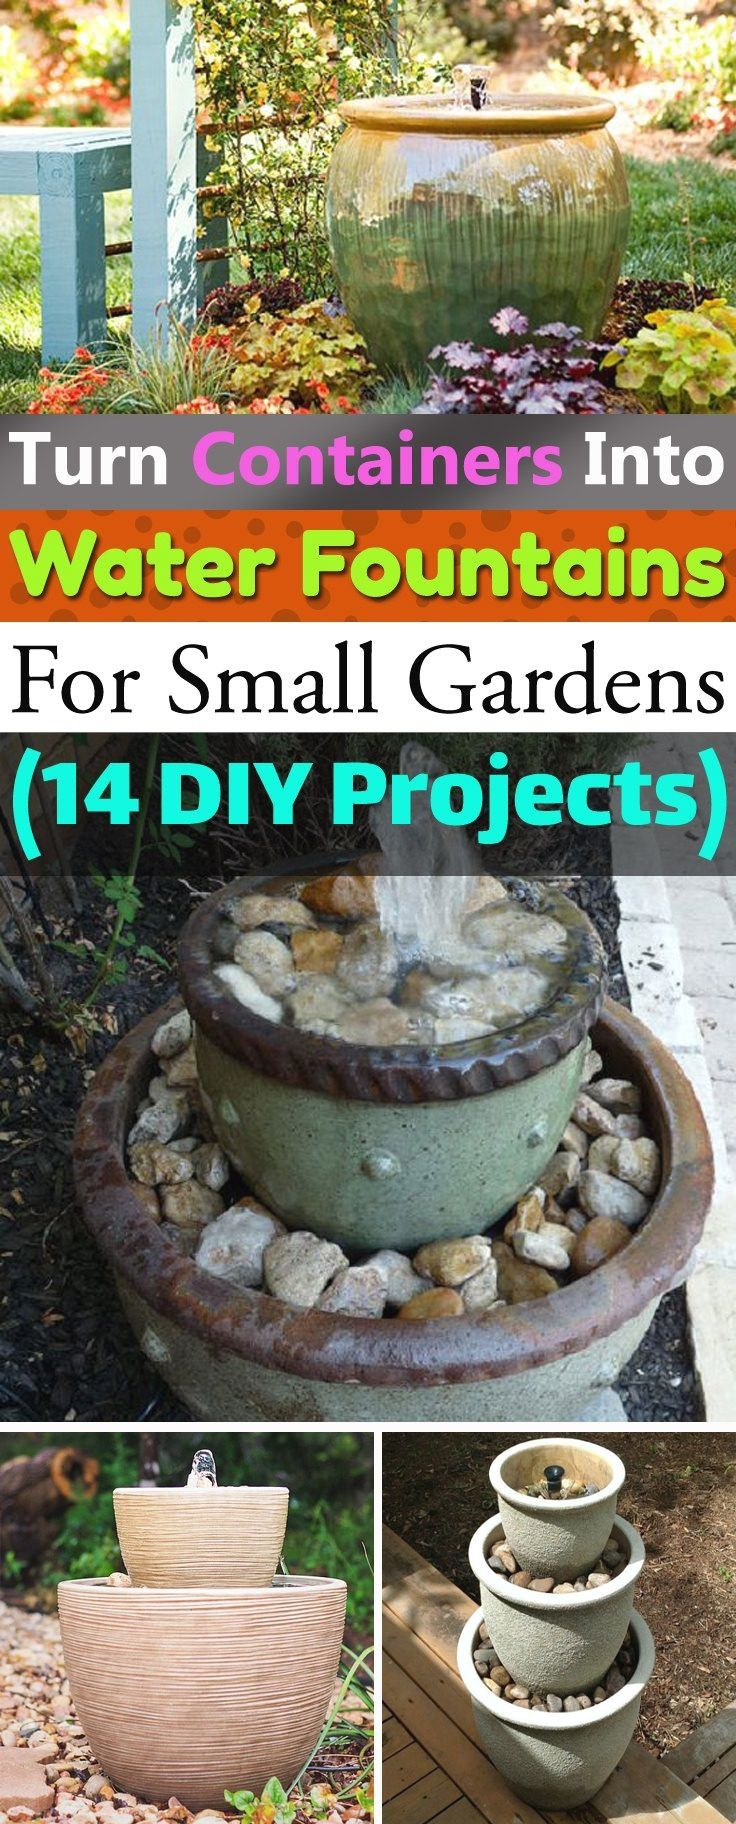 Pin by Sam Martin on Water Features | Patio water feature ...